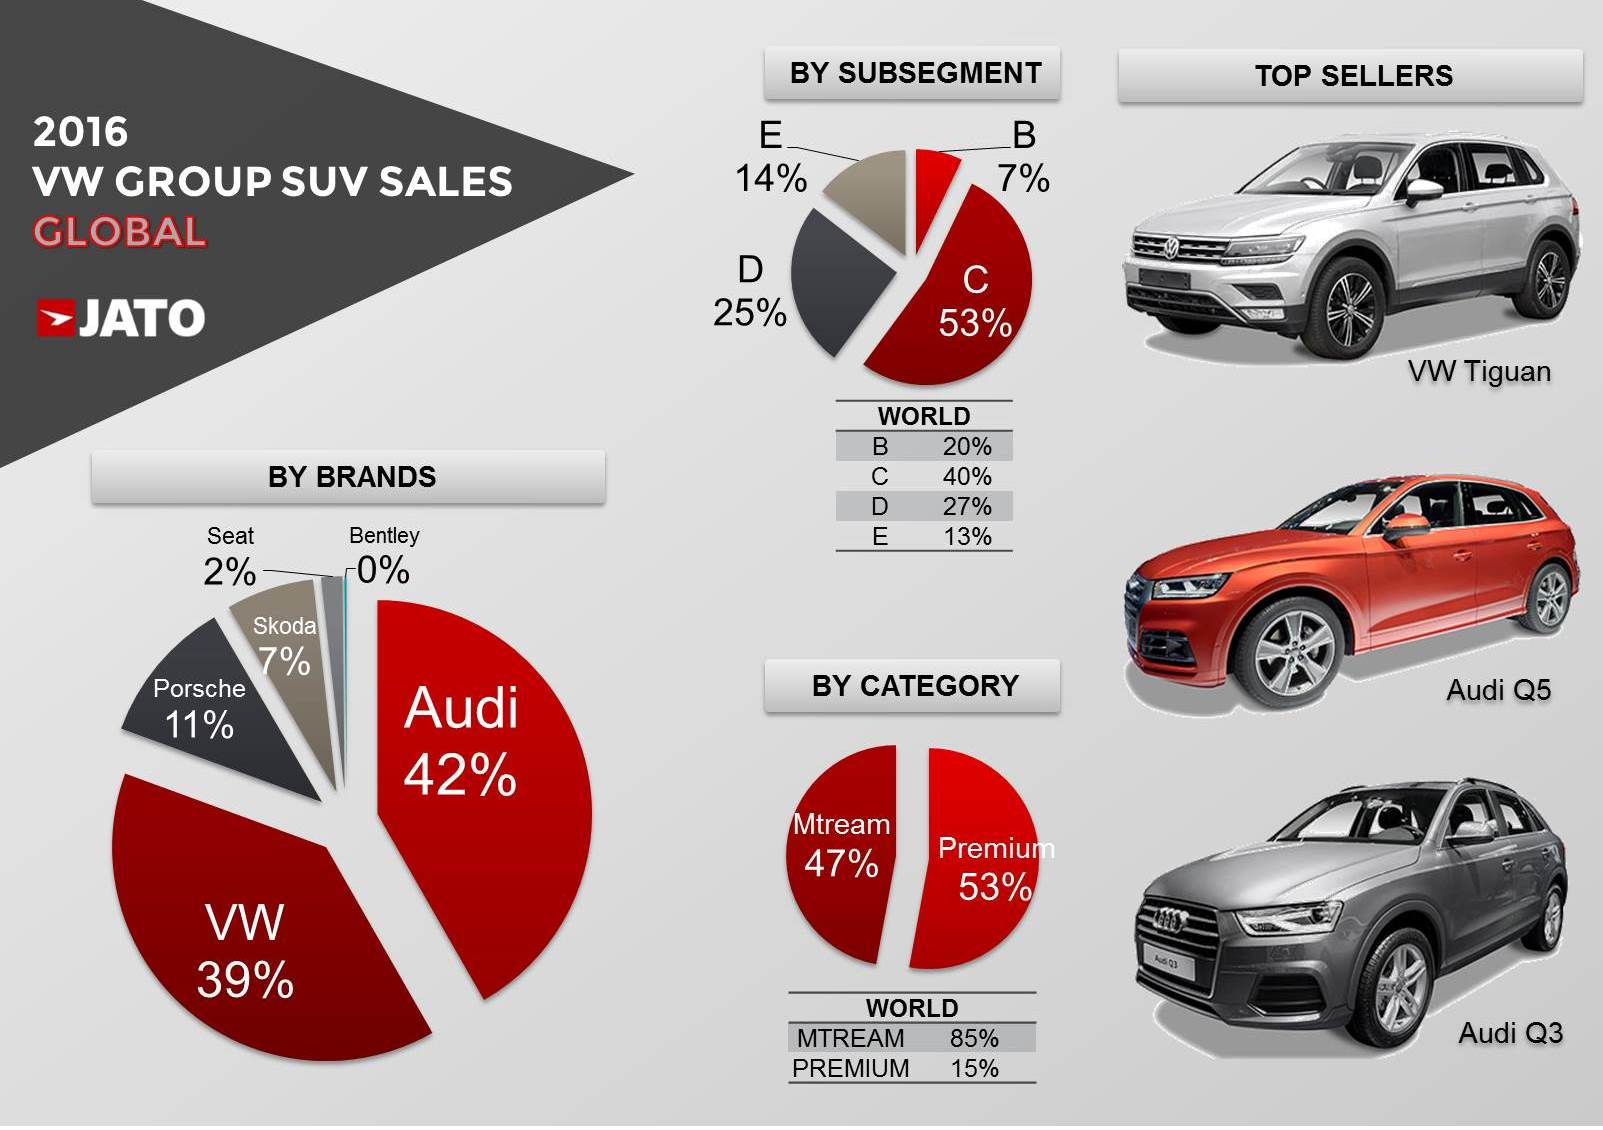 Whats Behind The Recent SUV Announcements From VW Group JATO - Volkswagen audi